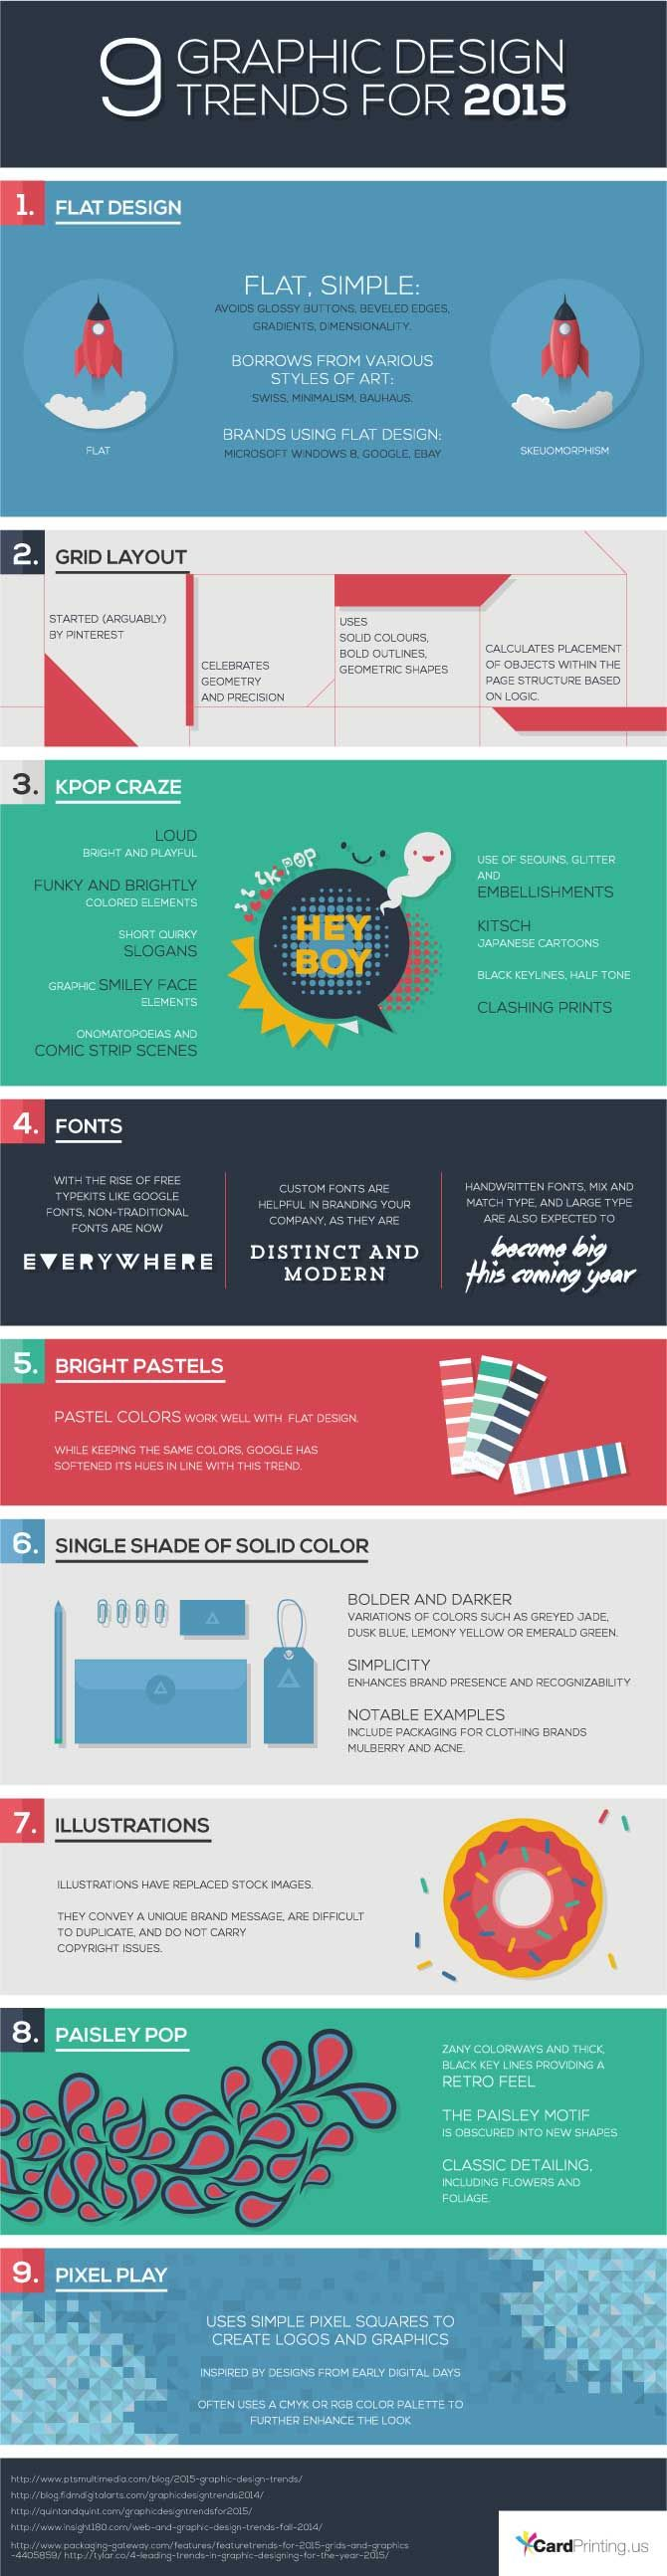 20 best re pins images on pinterest graph design charts and chart graphic design trends for 2015 webmag digital resources for net professionals fandeluxe Choice Image